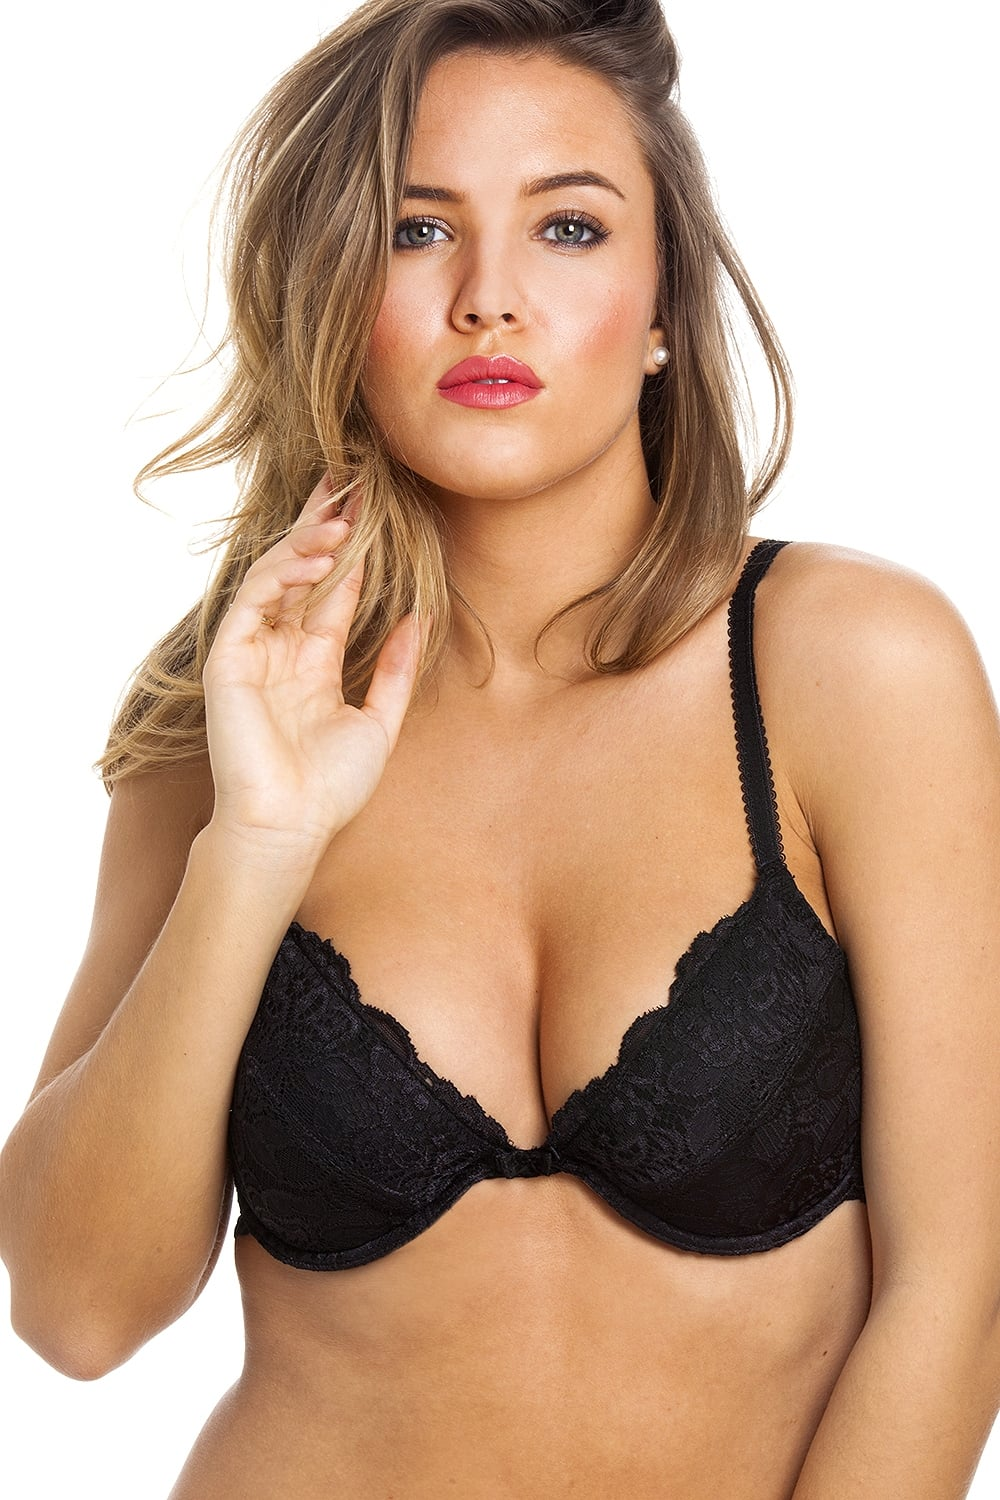 a9fef84870633 Camille Womens Ladies Black Push Up Plunge Paddded Underwired Bra Size  34A-40G